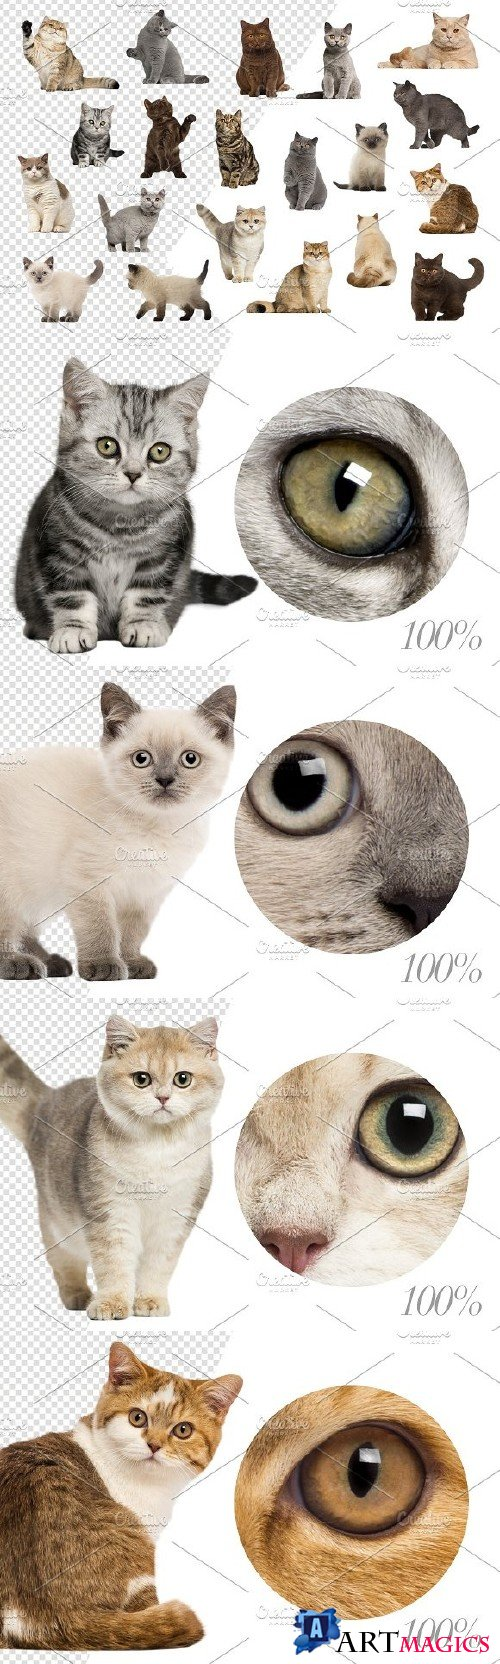 20 British Shorthairs - Cut-out Pics 2293260